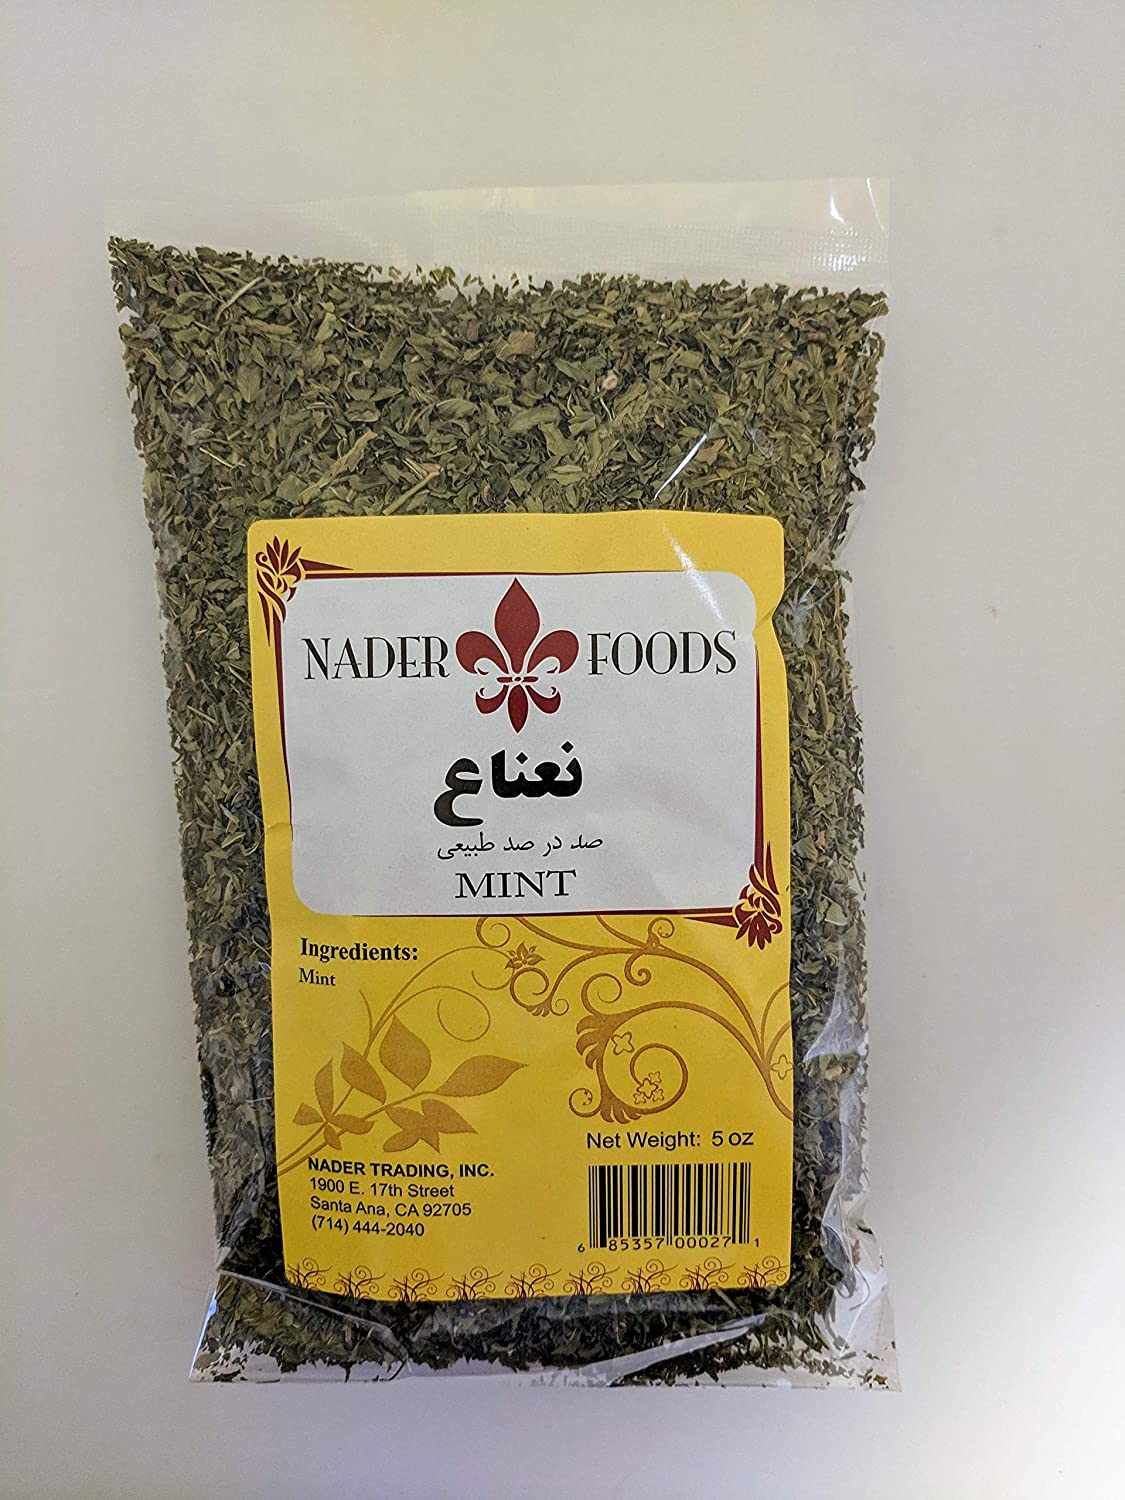 Nader Foods Mint Tucson Mall oz 5 Max 70% OFF Leaves